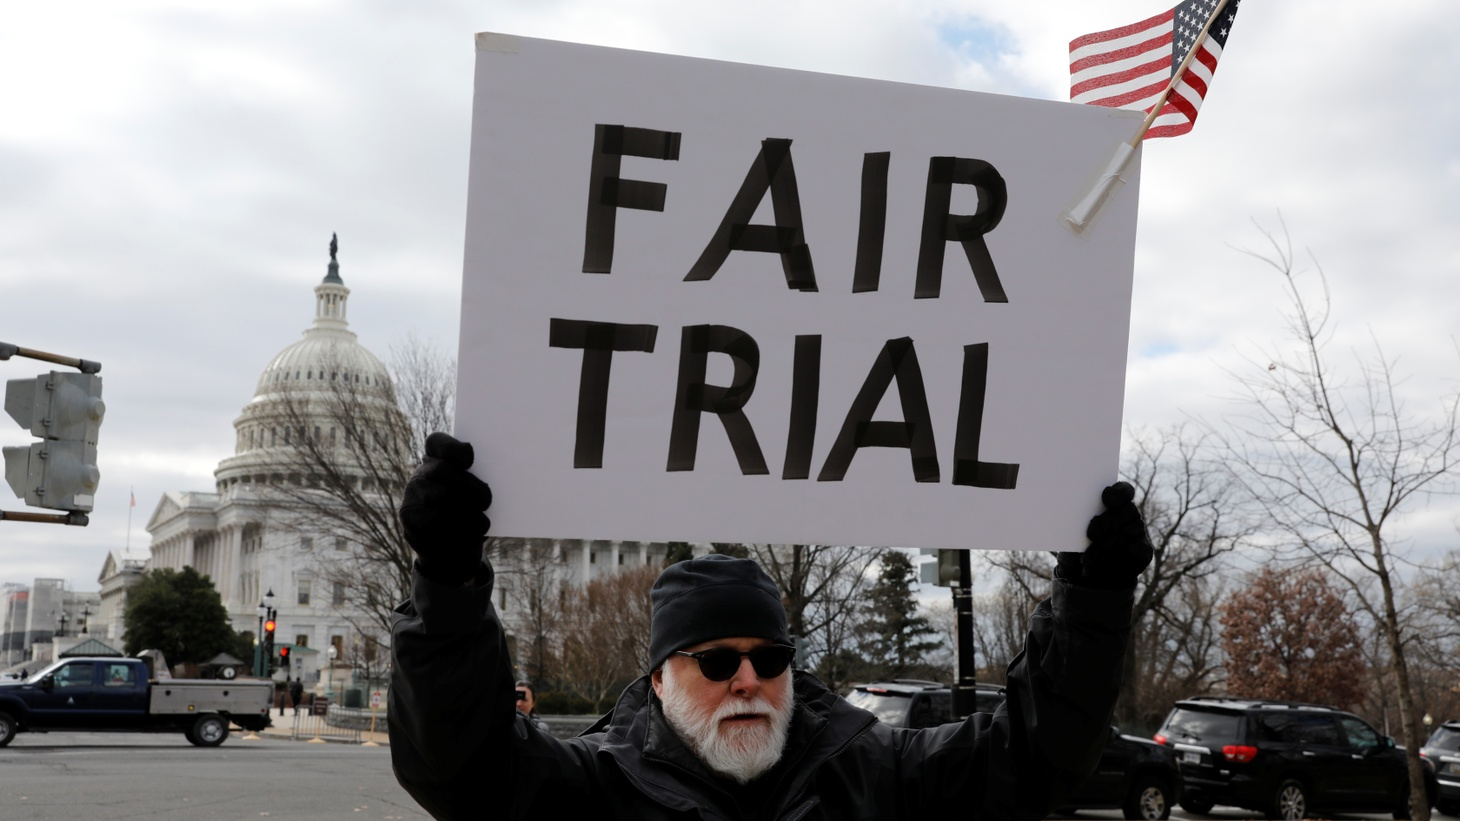 An activist holds a sign during a rally calling for witnesses in the Senate impeachment trial of U.S. President Donald Trump at the U.S. Capitol in Washington, U.S., January 29, 2020.